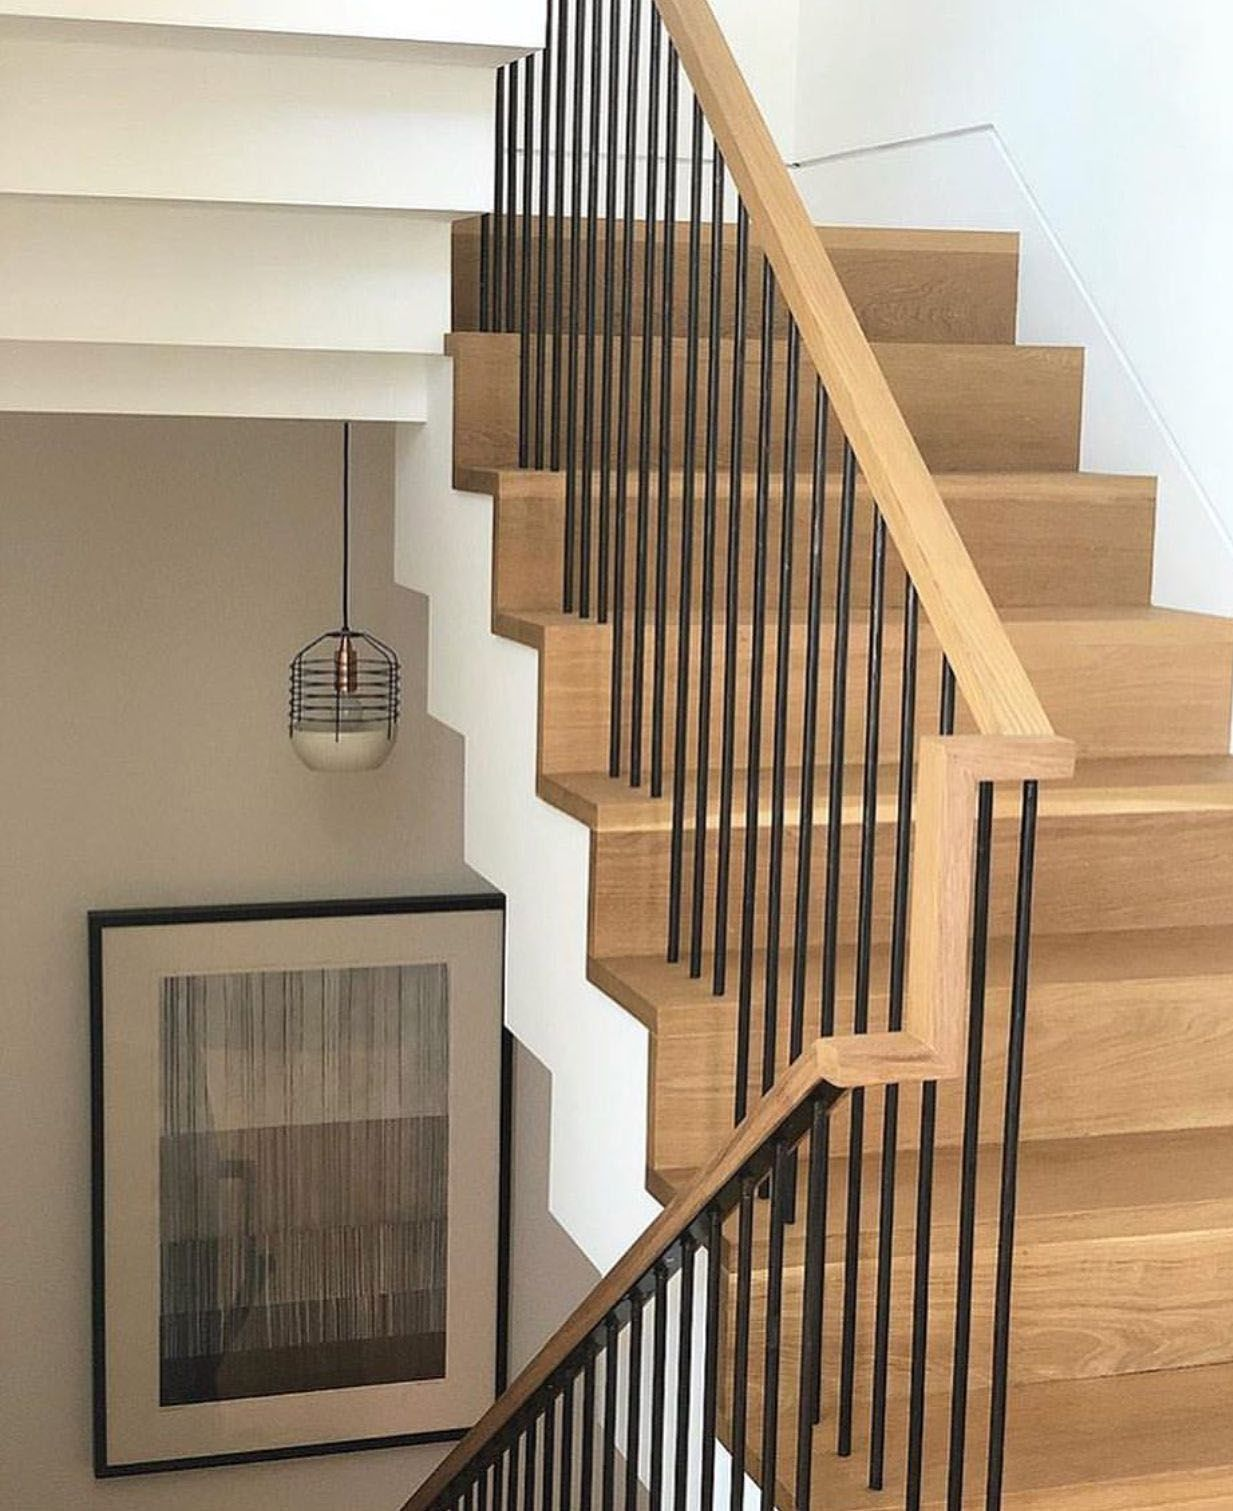 22 Modern Innovative Staircase Ideas: Top 10 Unique Modern Staircase Design Ideas For Your Dream